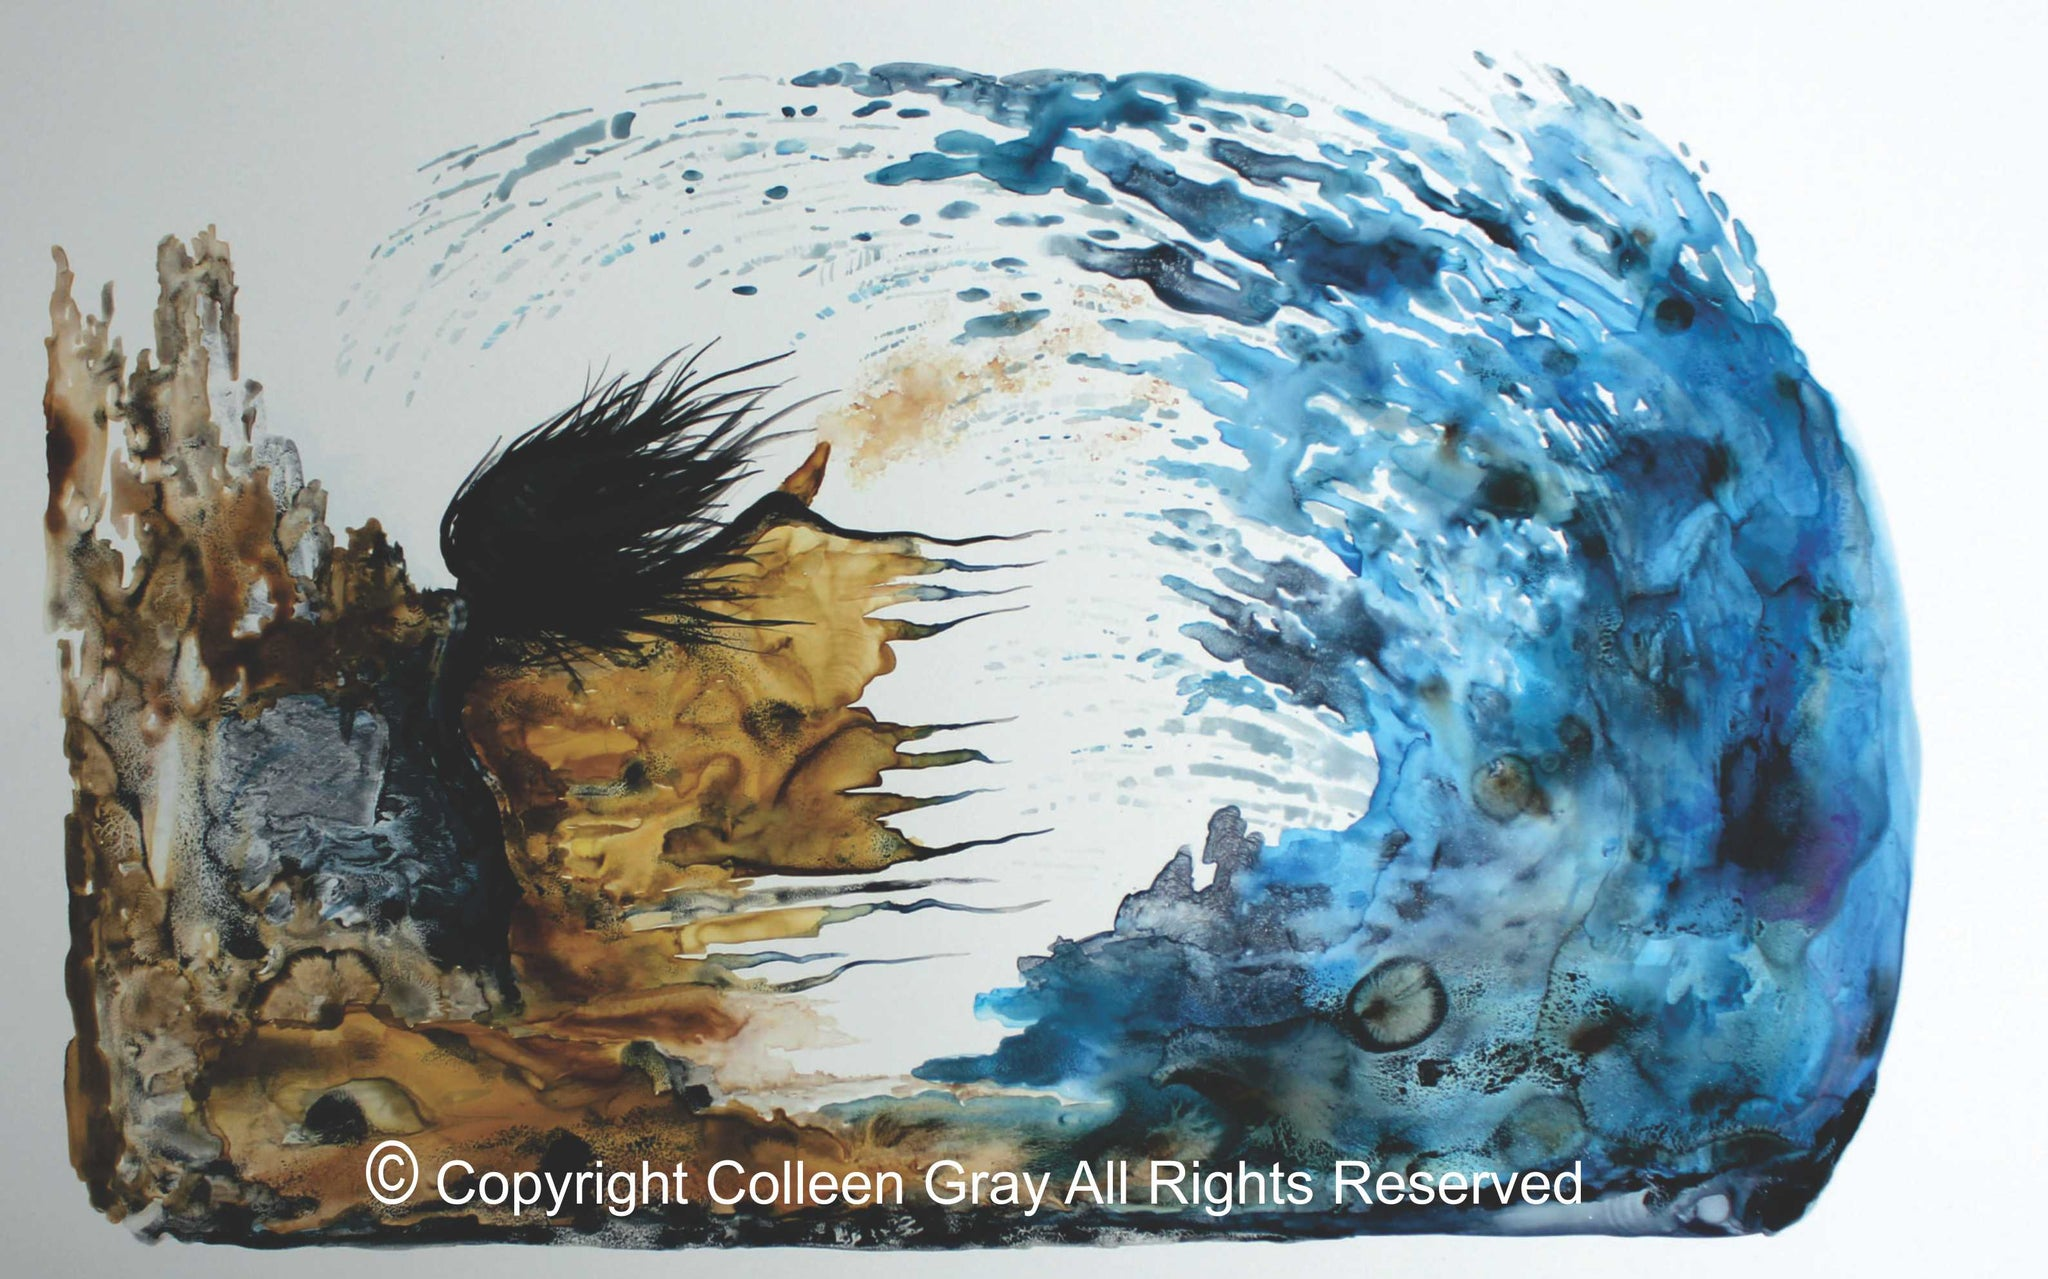 Image of Title: Woman 16x20 archival print by Metis Artist Colleen Gray Indigenous Canadian Art Work. Horizontal. Woman with long flowing hair, outstretched arms, water huge wave. For sale at https://artforaidshop.ca